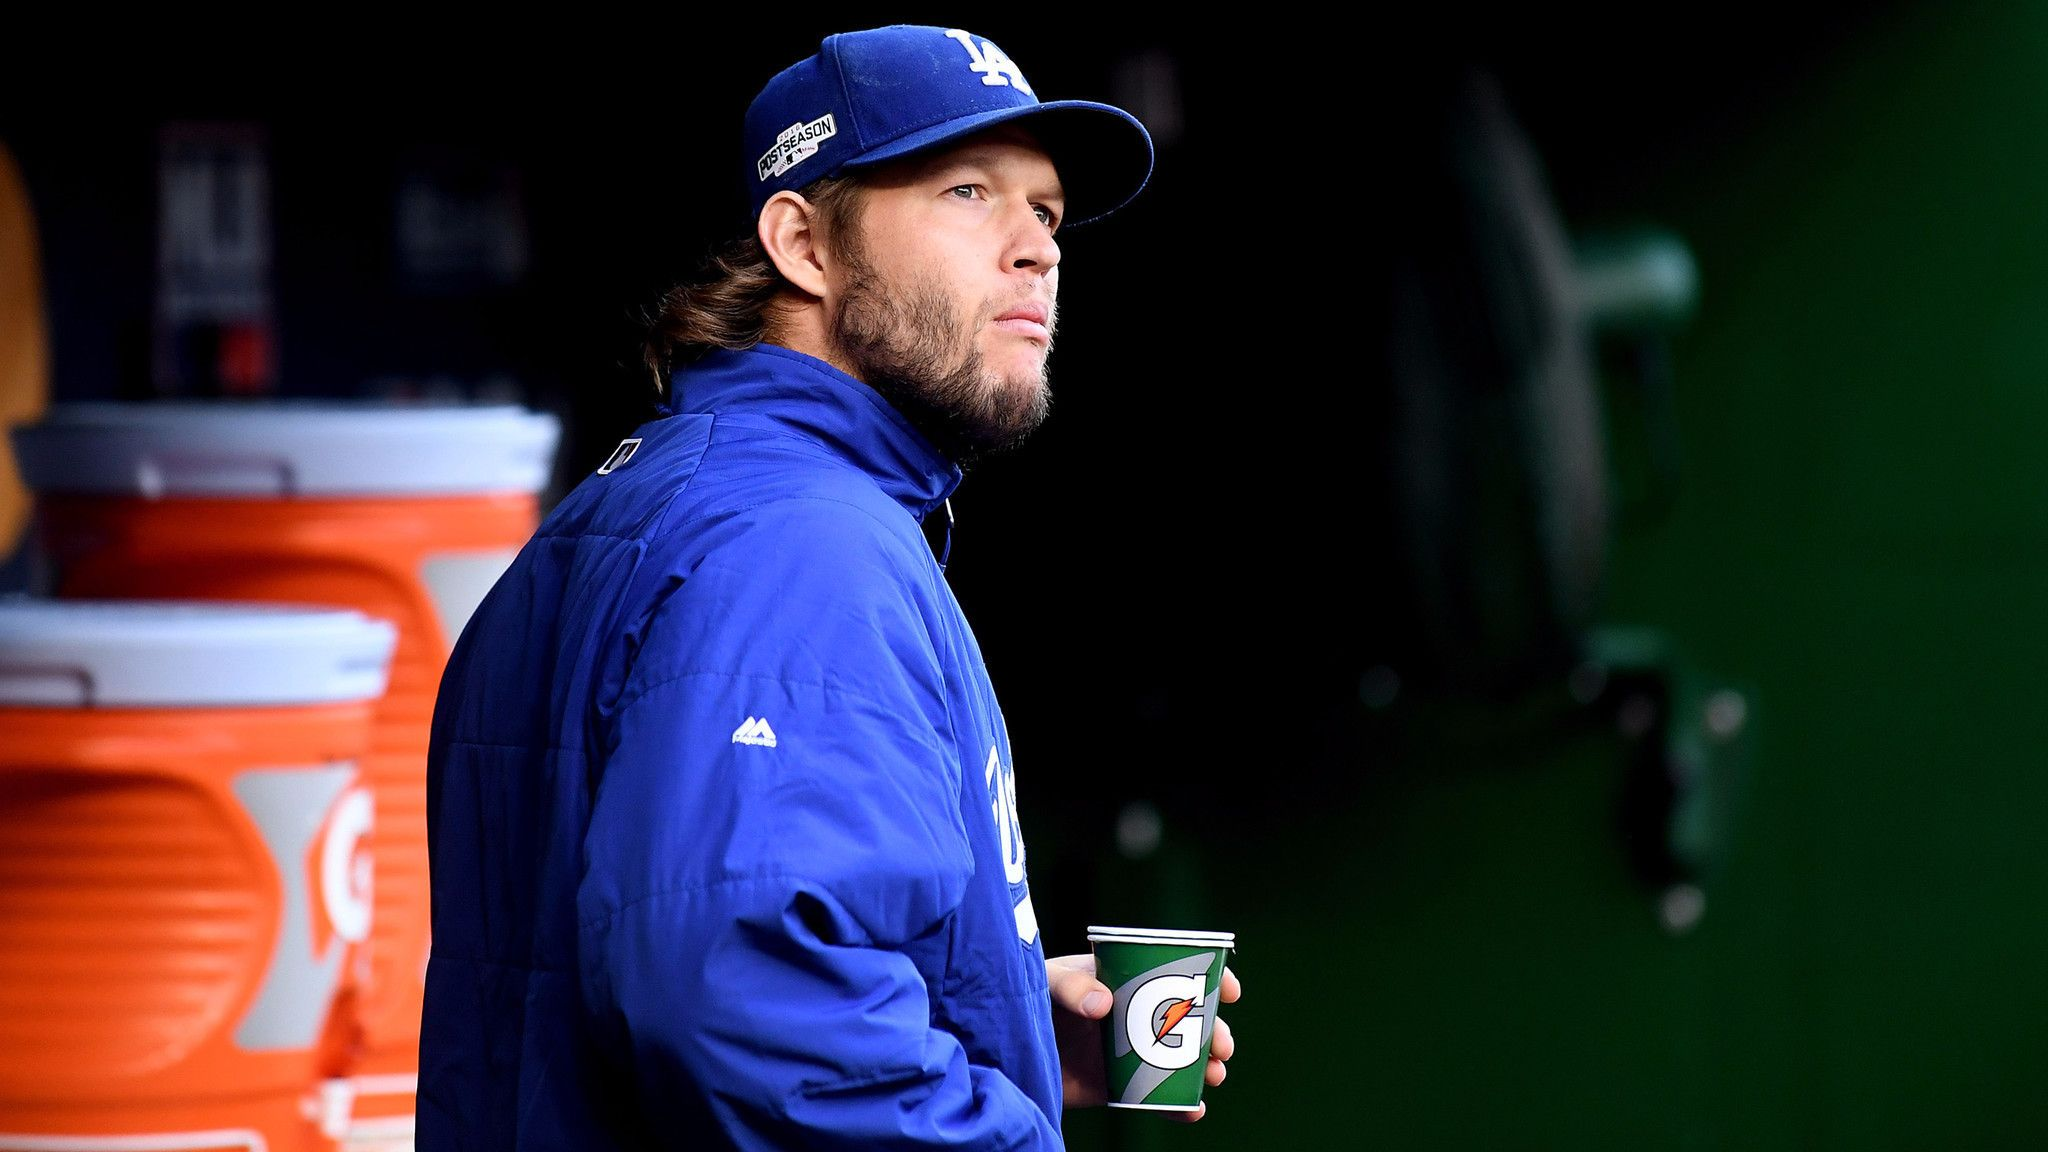 Dodgers' Clayton Kershaw conquers his demons, if not the Nationals, in gritty 4-3 Game 1 win - LA Times